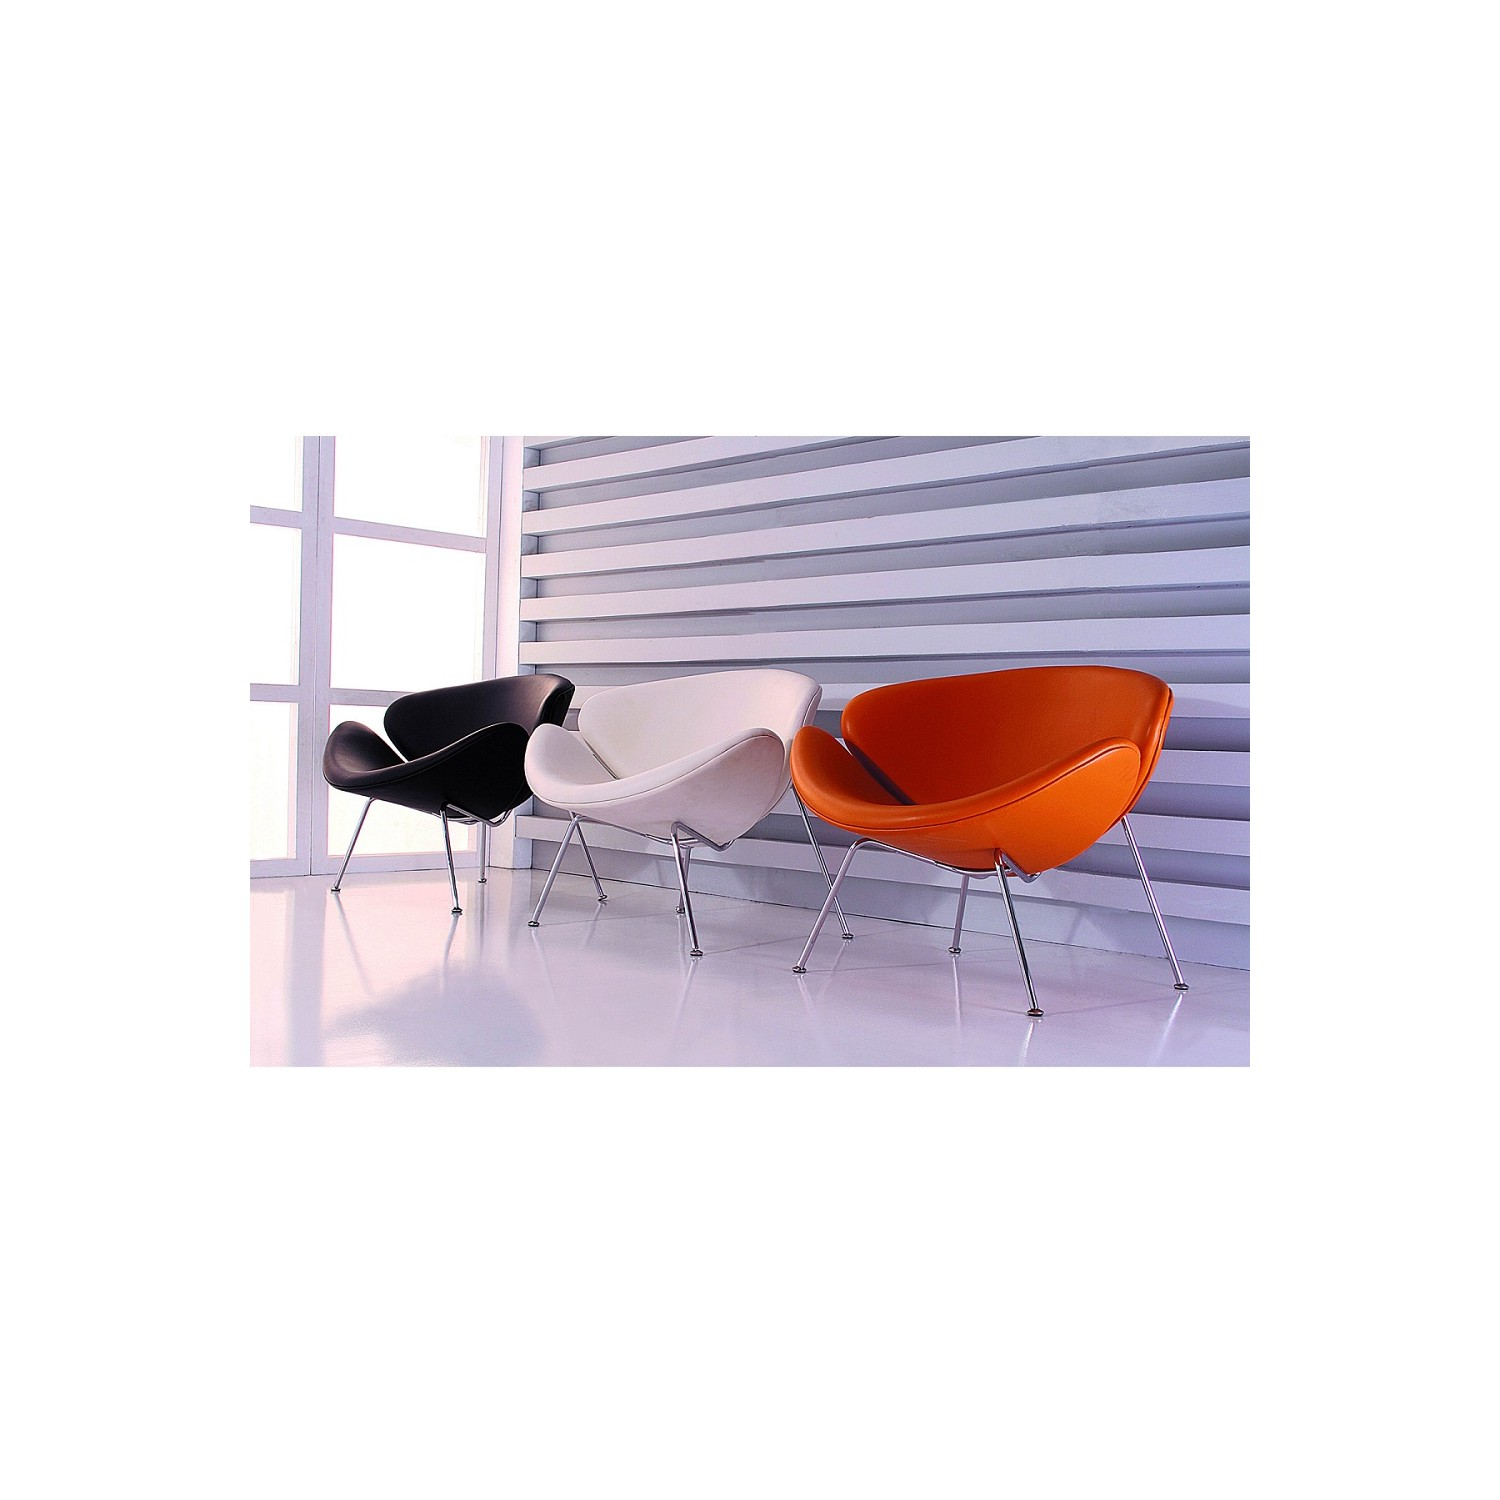 Brilliant Roxy Accent Chair In Orange Leatherette W Chrome Frame Set Of 2 By Diamond Sofa Ibusinesslaw Wood Chair Design Ideas Ibusinesslaworg